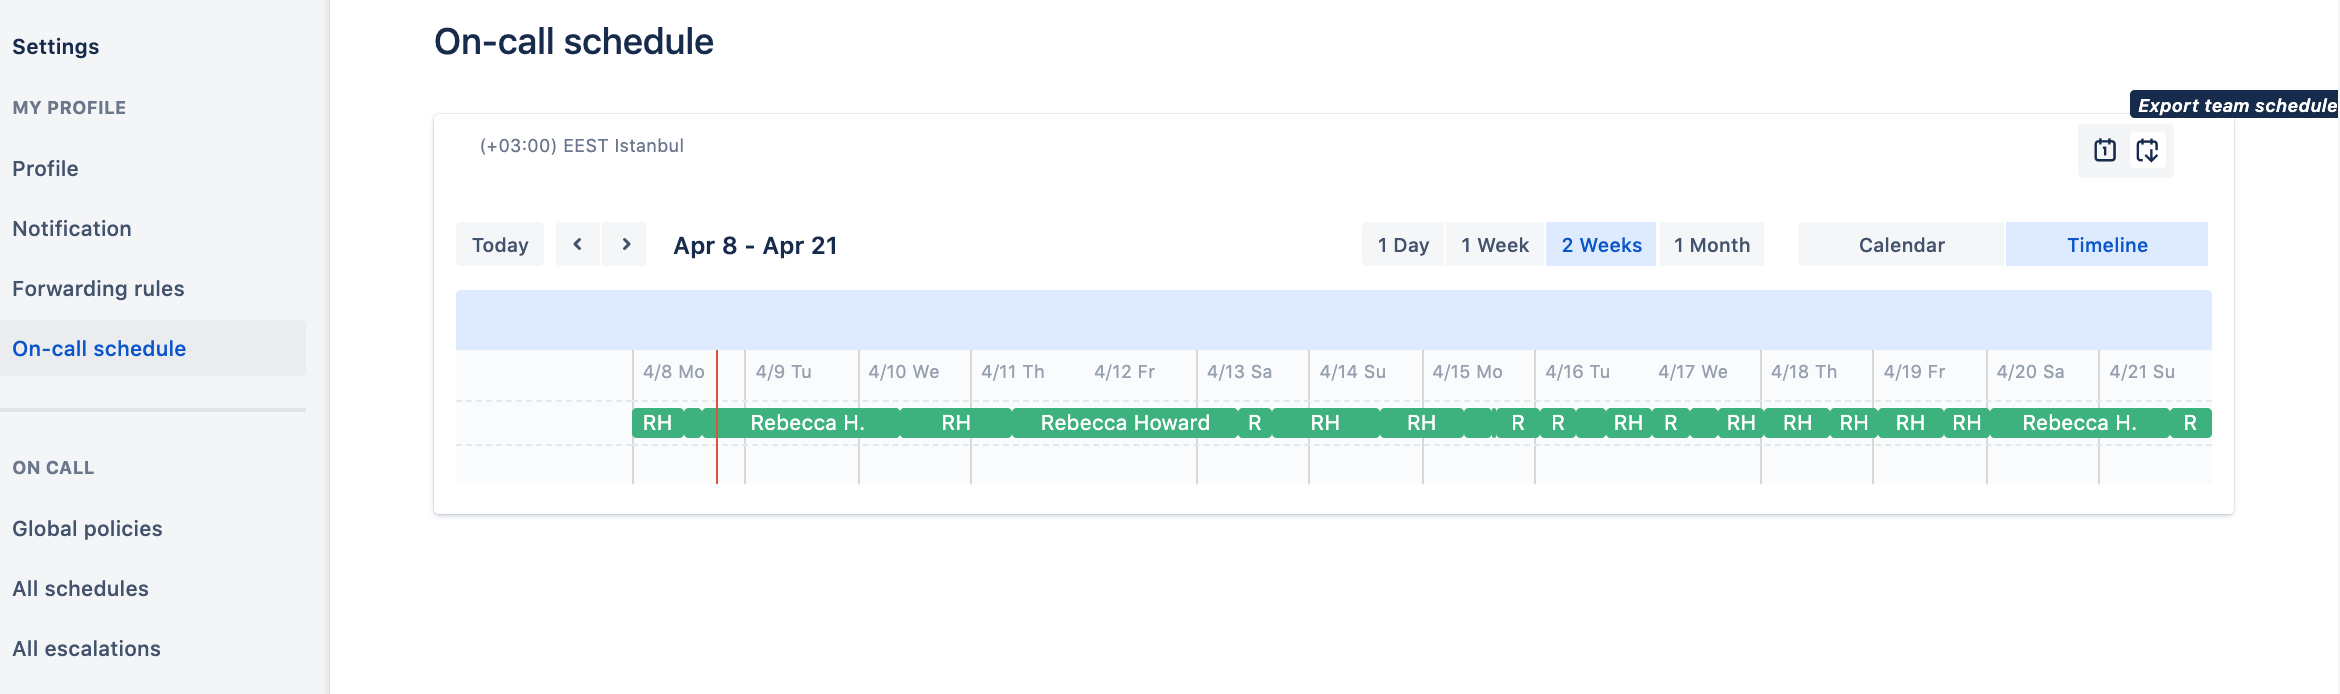 On Call Schedules And Rotations On Call Rotation Template